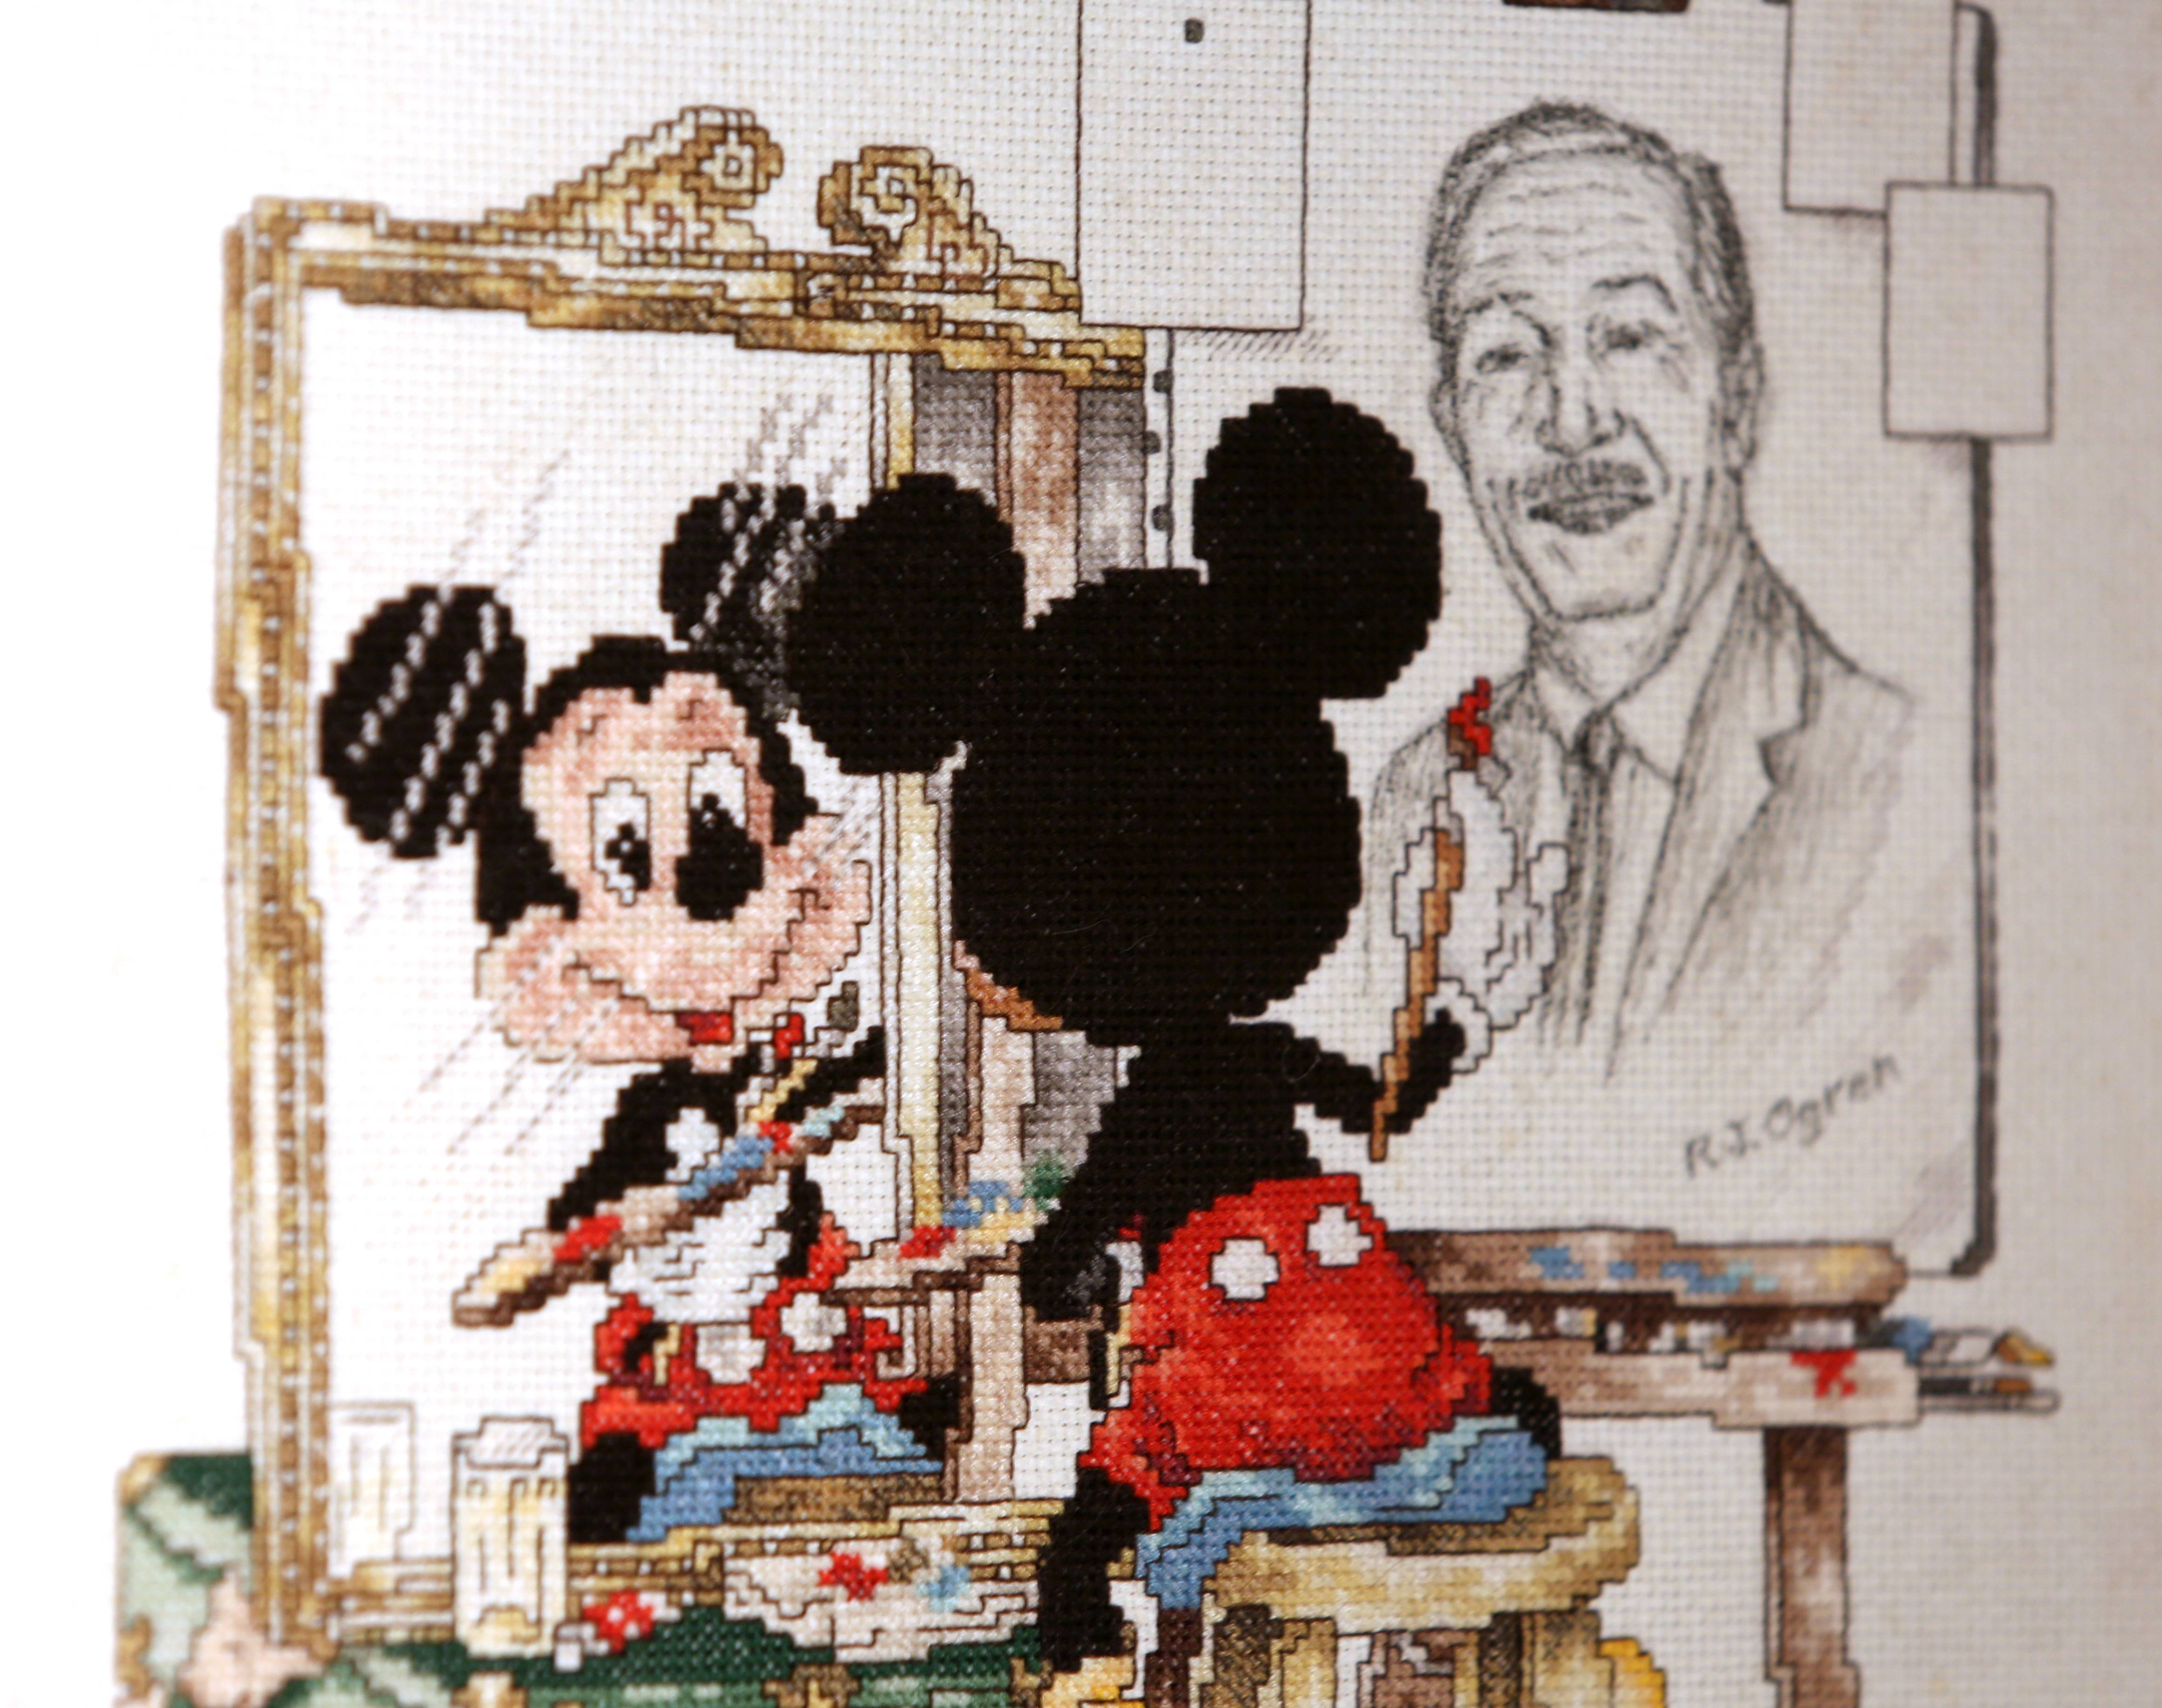 RJ Ogren, who has made a career out of Disney art, displays extensive Disney memorabilia such as this image of Mickey Mouse in the Naperville house he shares with his wife Suzanne.